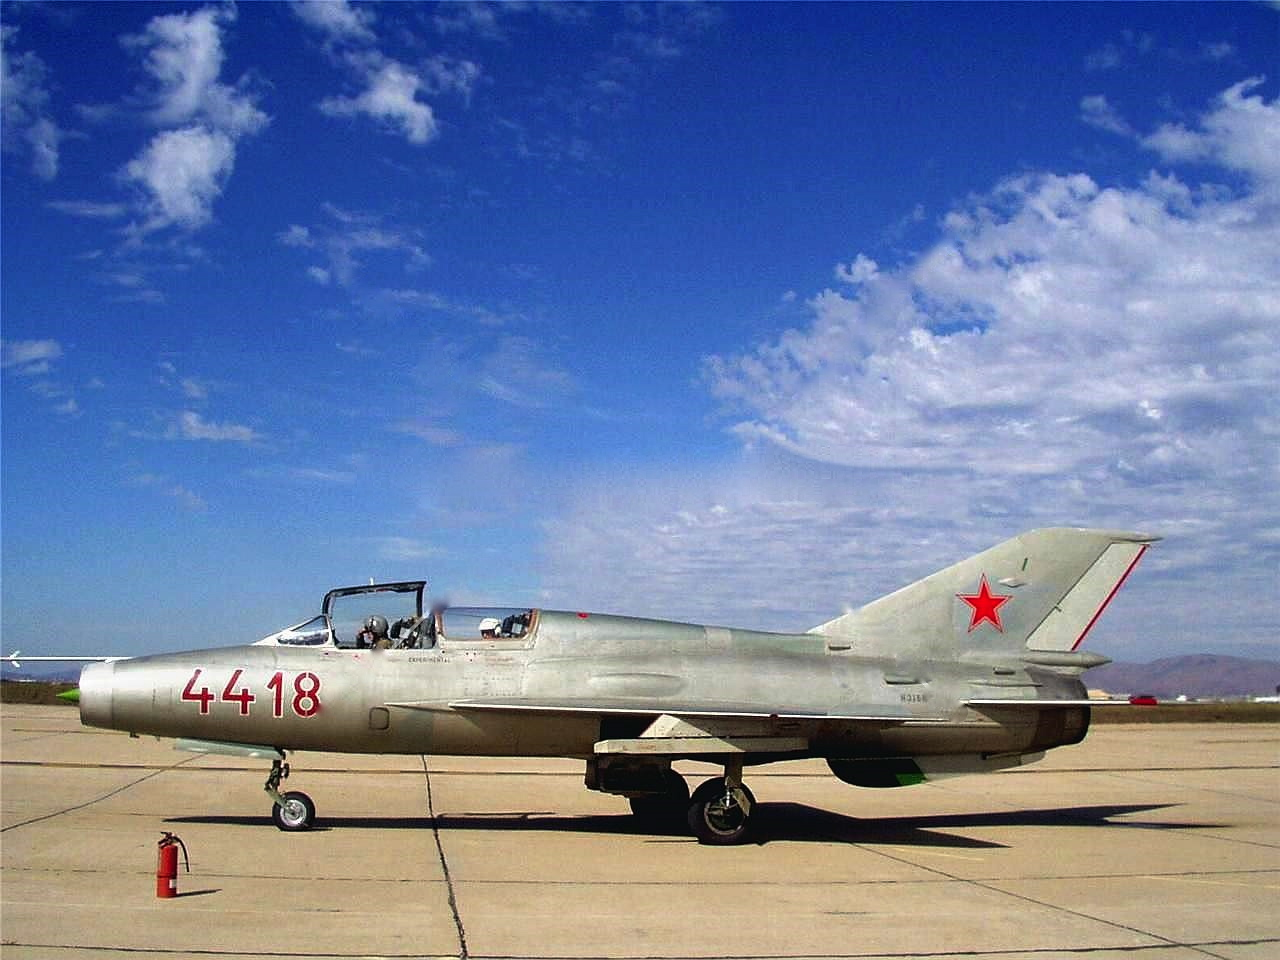 So, you can Buy an old Soviet Fighter Jet or a Boeing 747